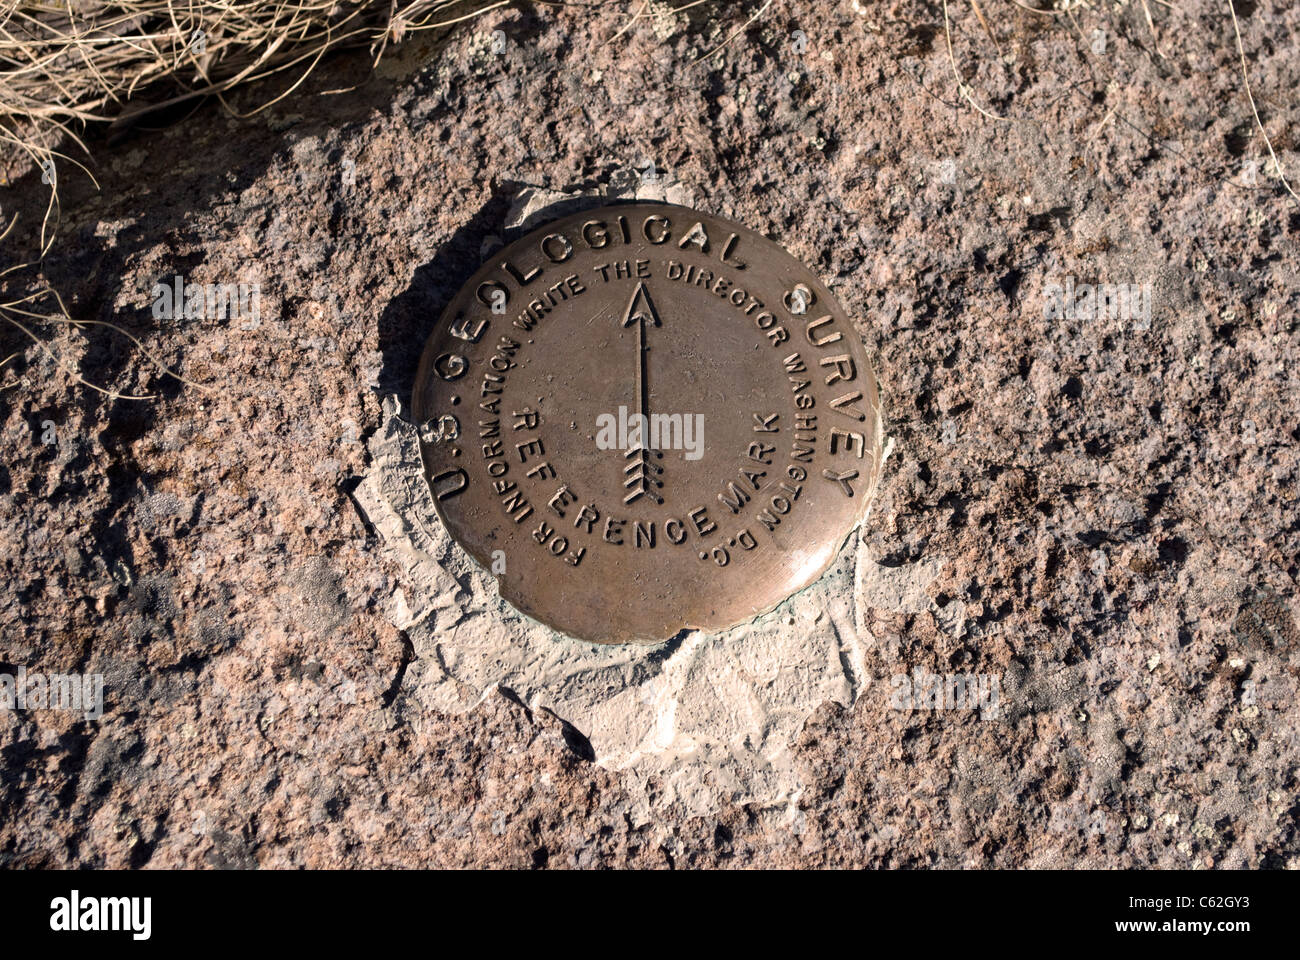 A reference marker found at the peak of Cerro Grande, denoting the location of a US Geological Service survey marker. - Stock Image